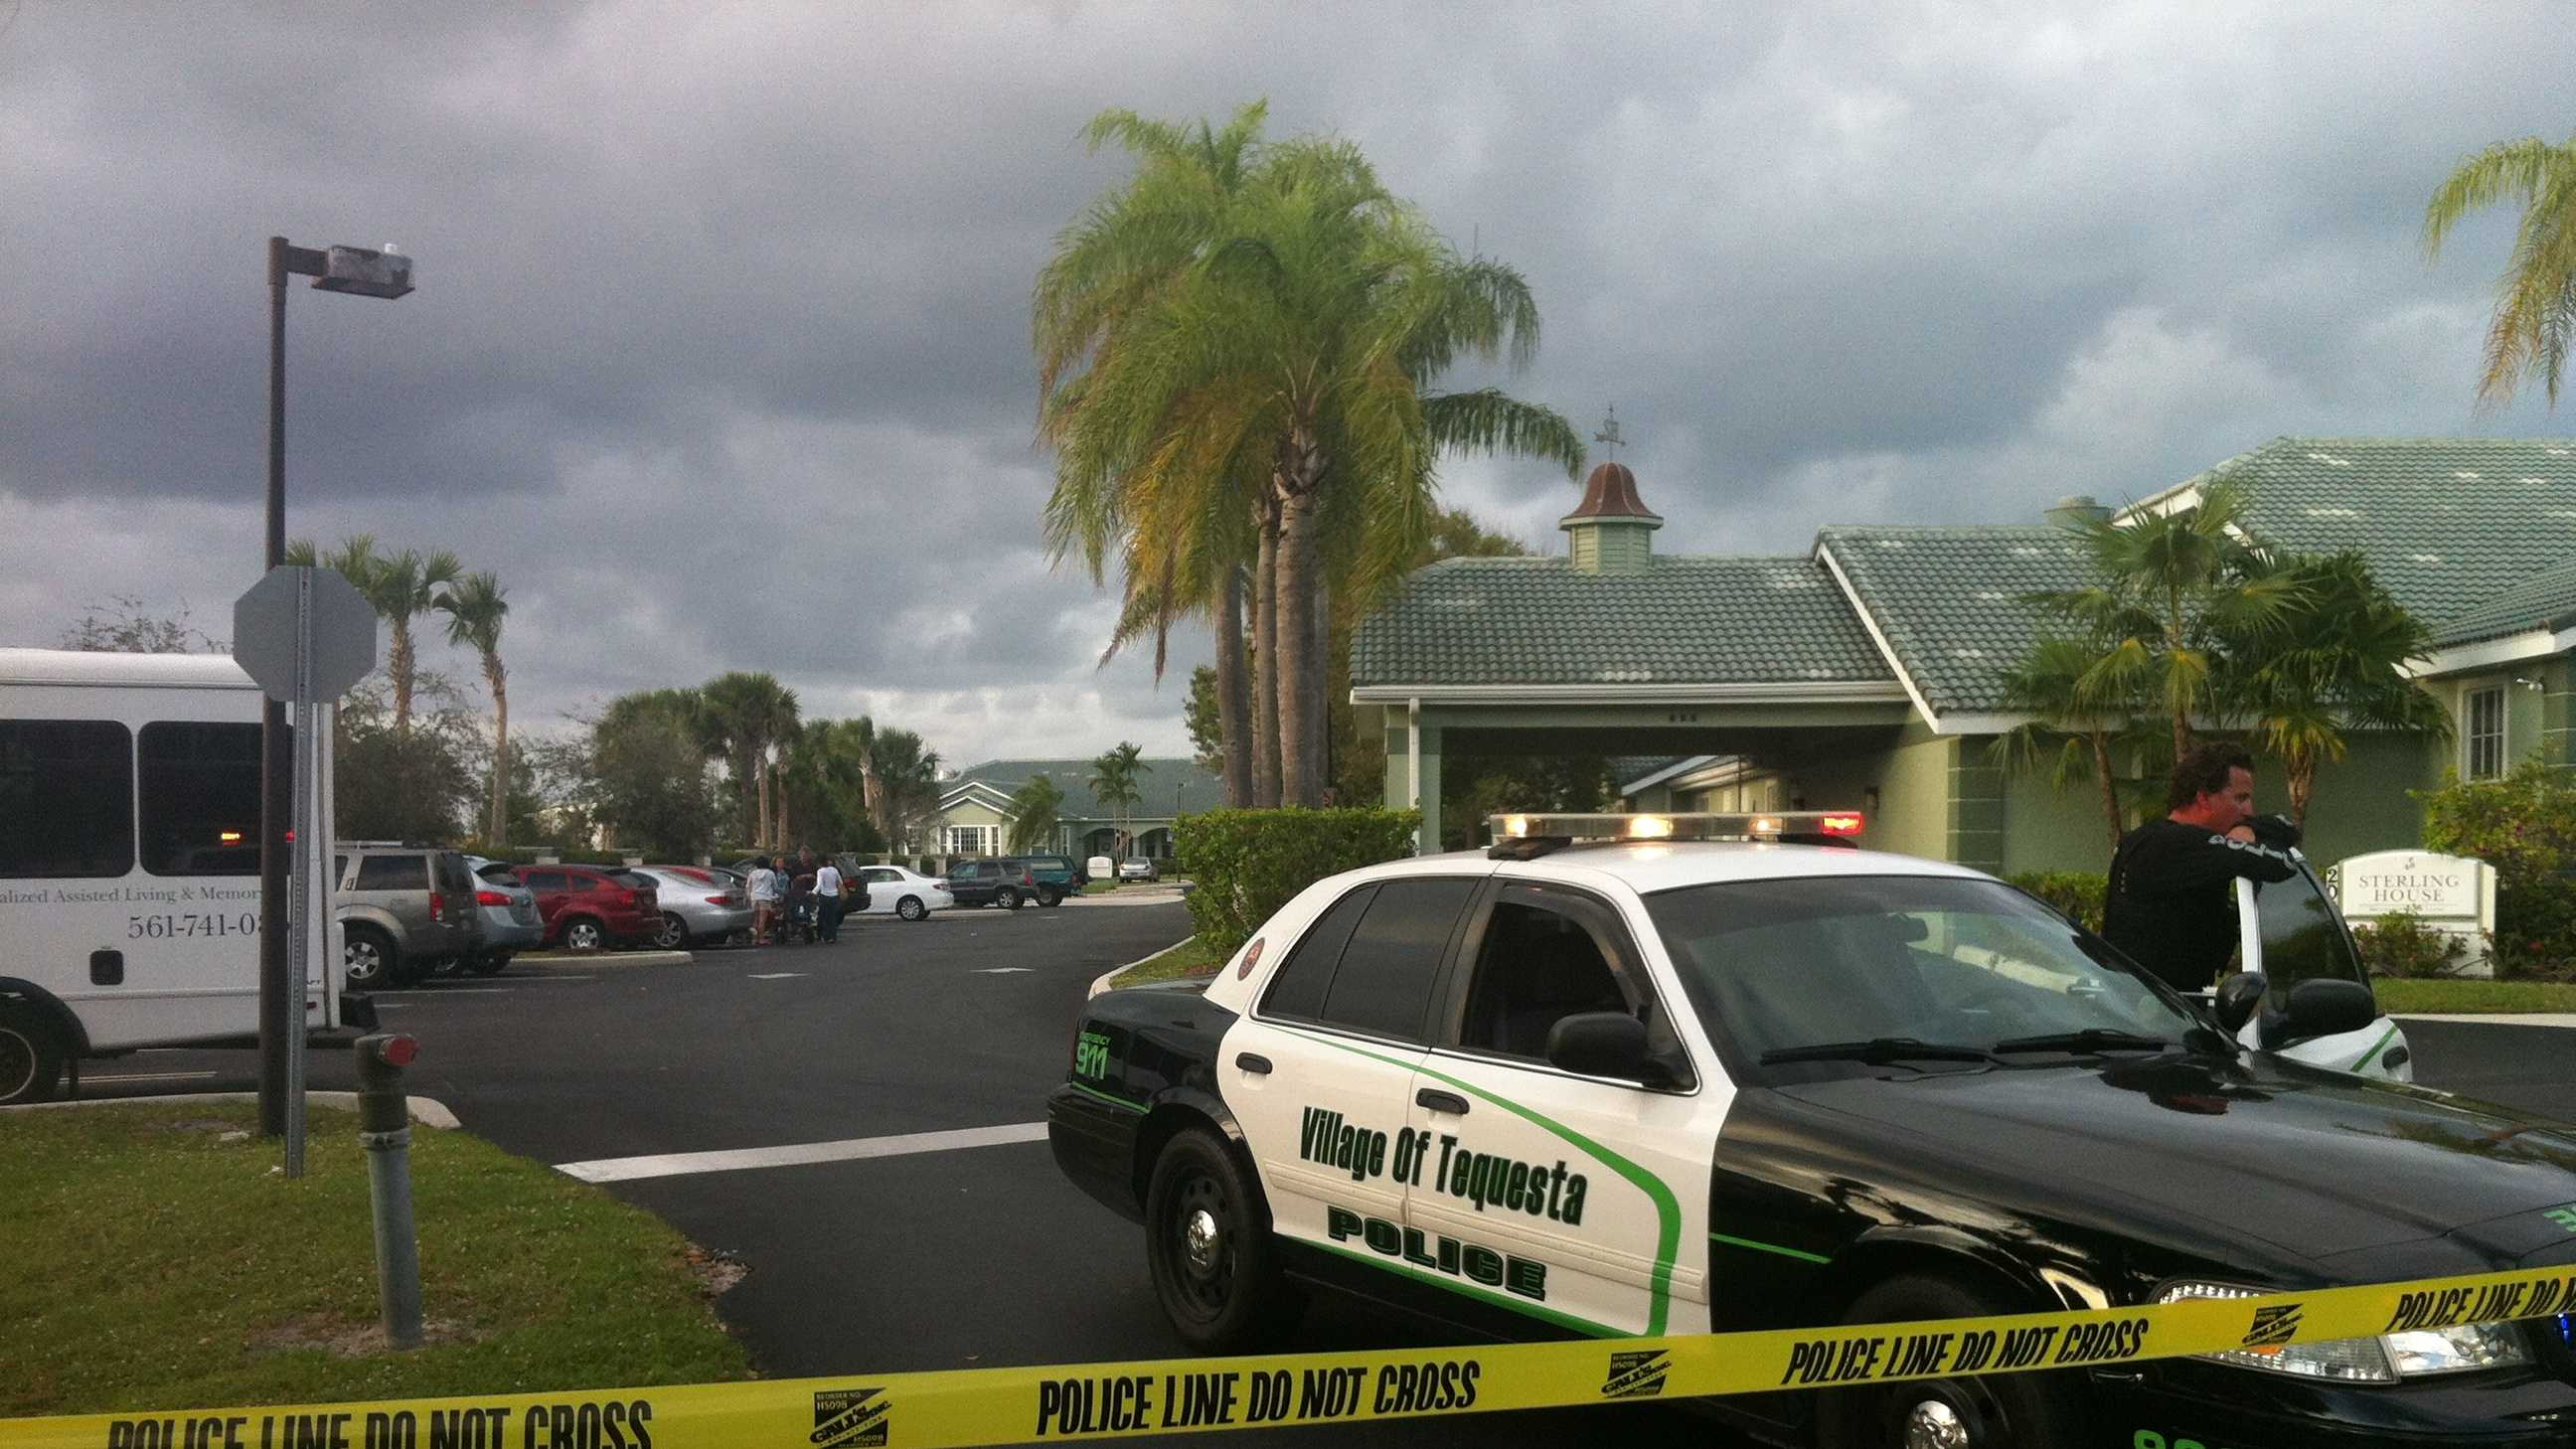 A man and woman were found shot to death at a Tequesta nursing home.